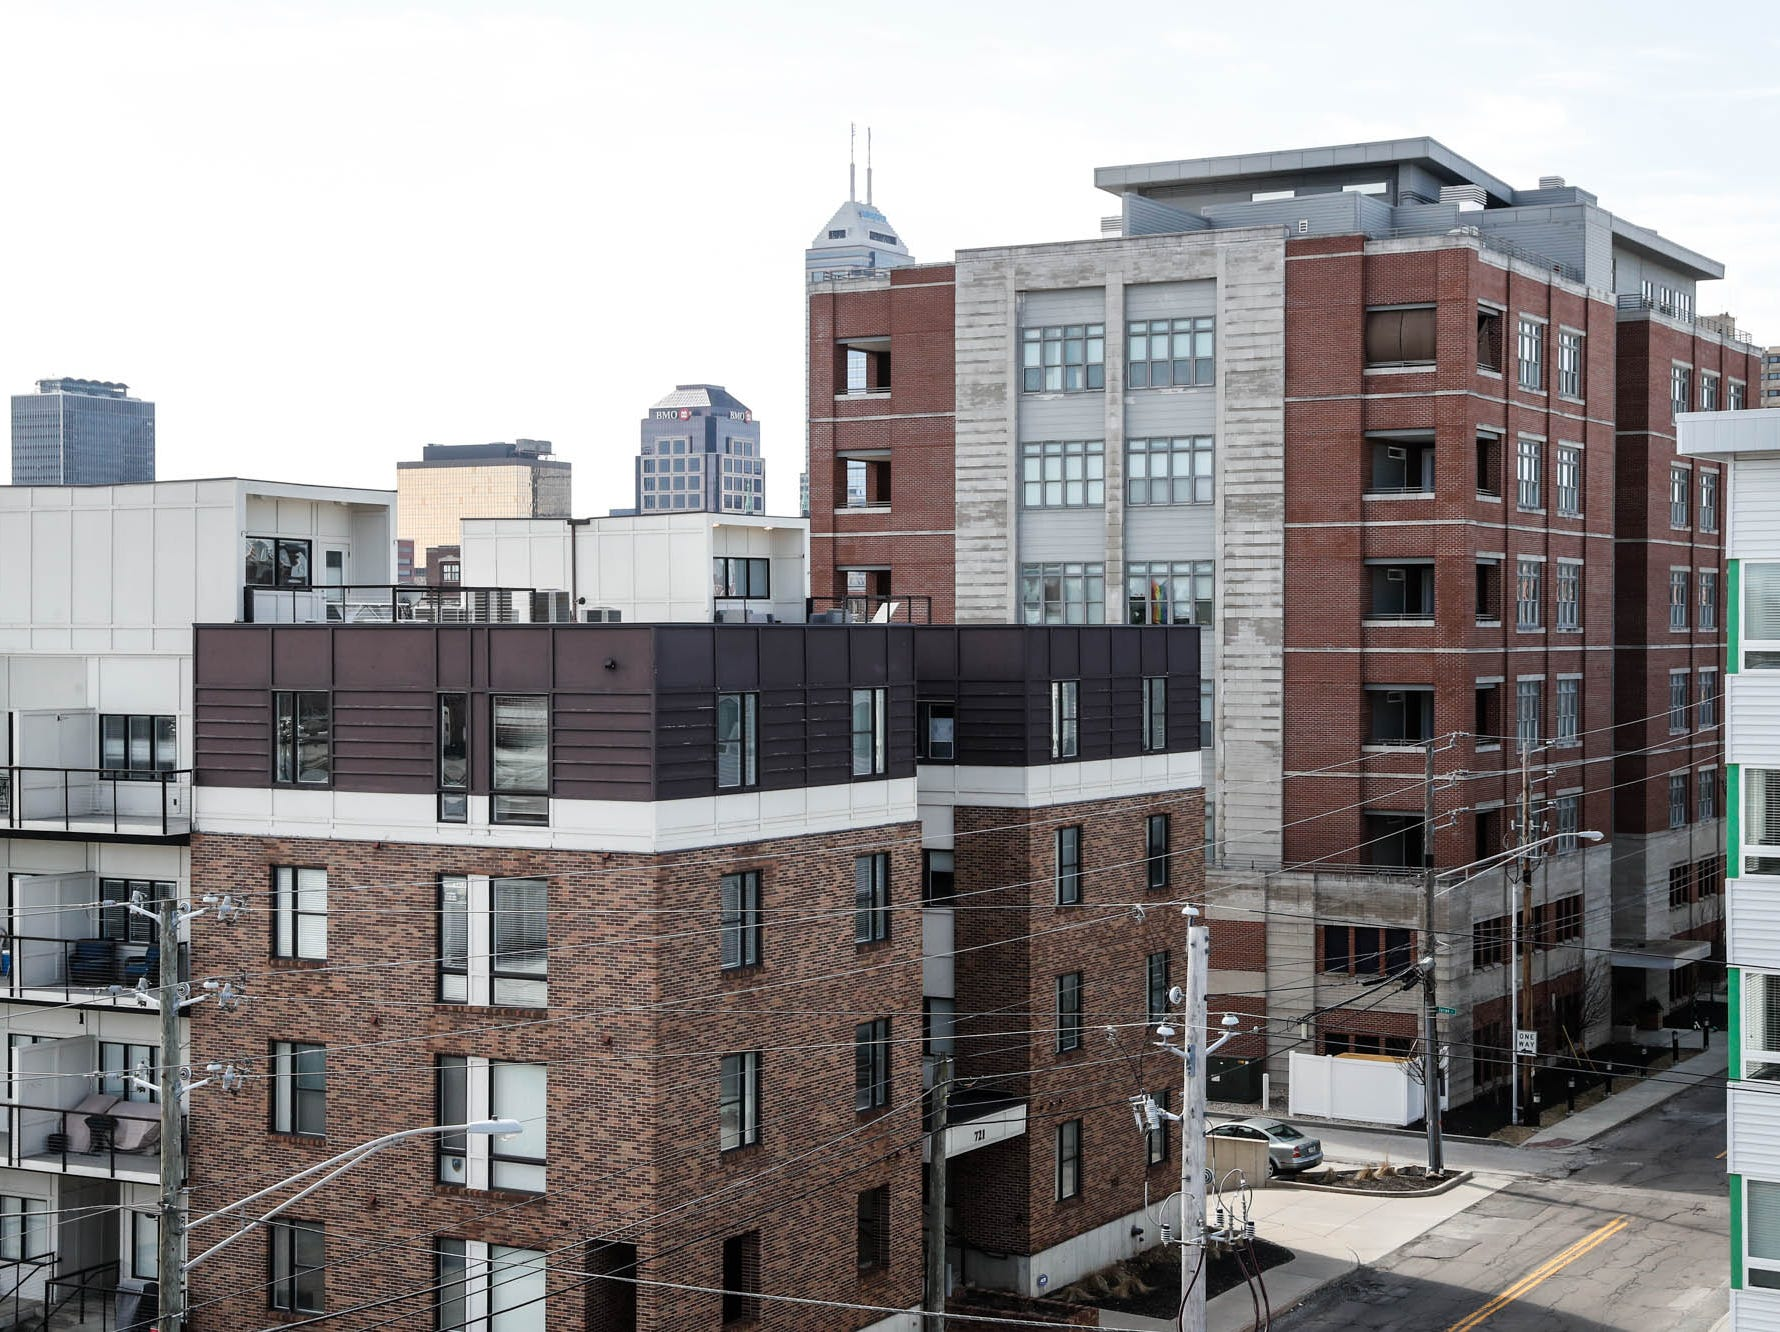 "The ""Naptown Rooftop Penthouse,"" located inside the Blumlux Diamond Building, 740 E. North Street, Indianapolis Ind., is available for short term Airbnb rental, Monday, March 11, 2019. For more info: www.rentalpreneur.com, Hostsofindy.com, 317-797-2525."